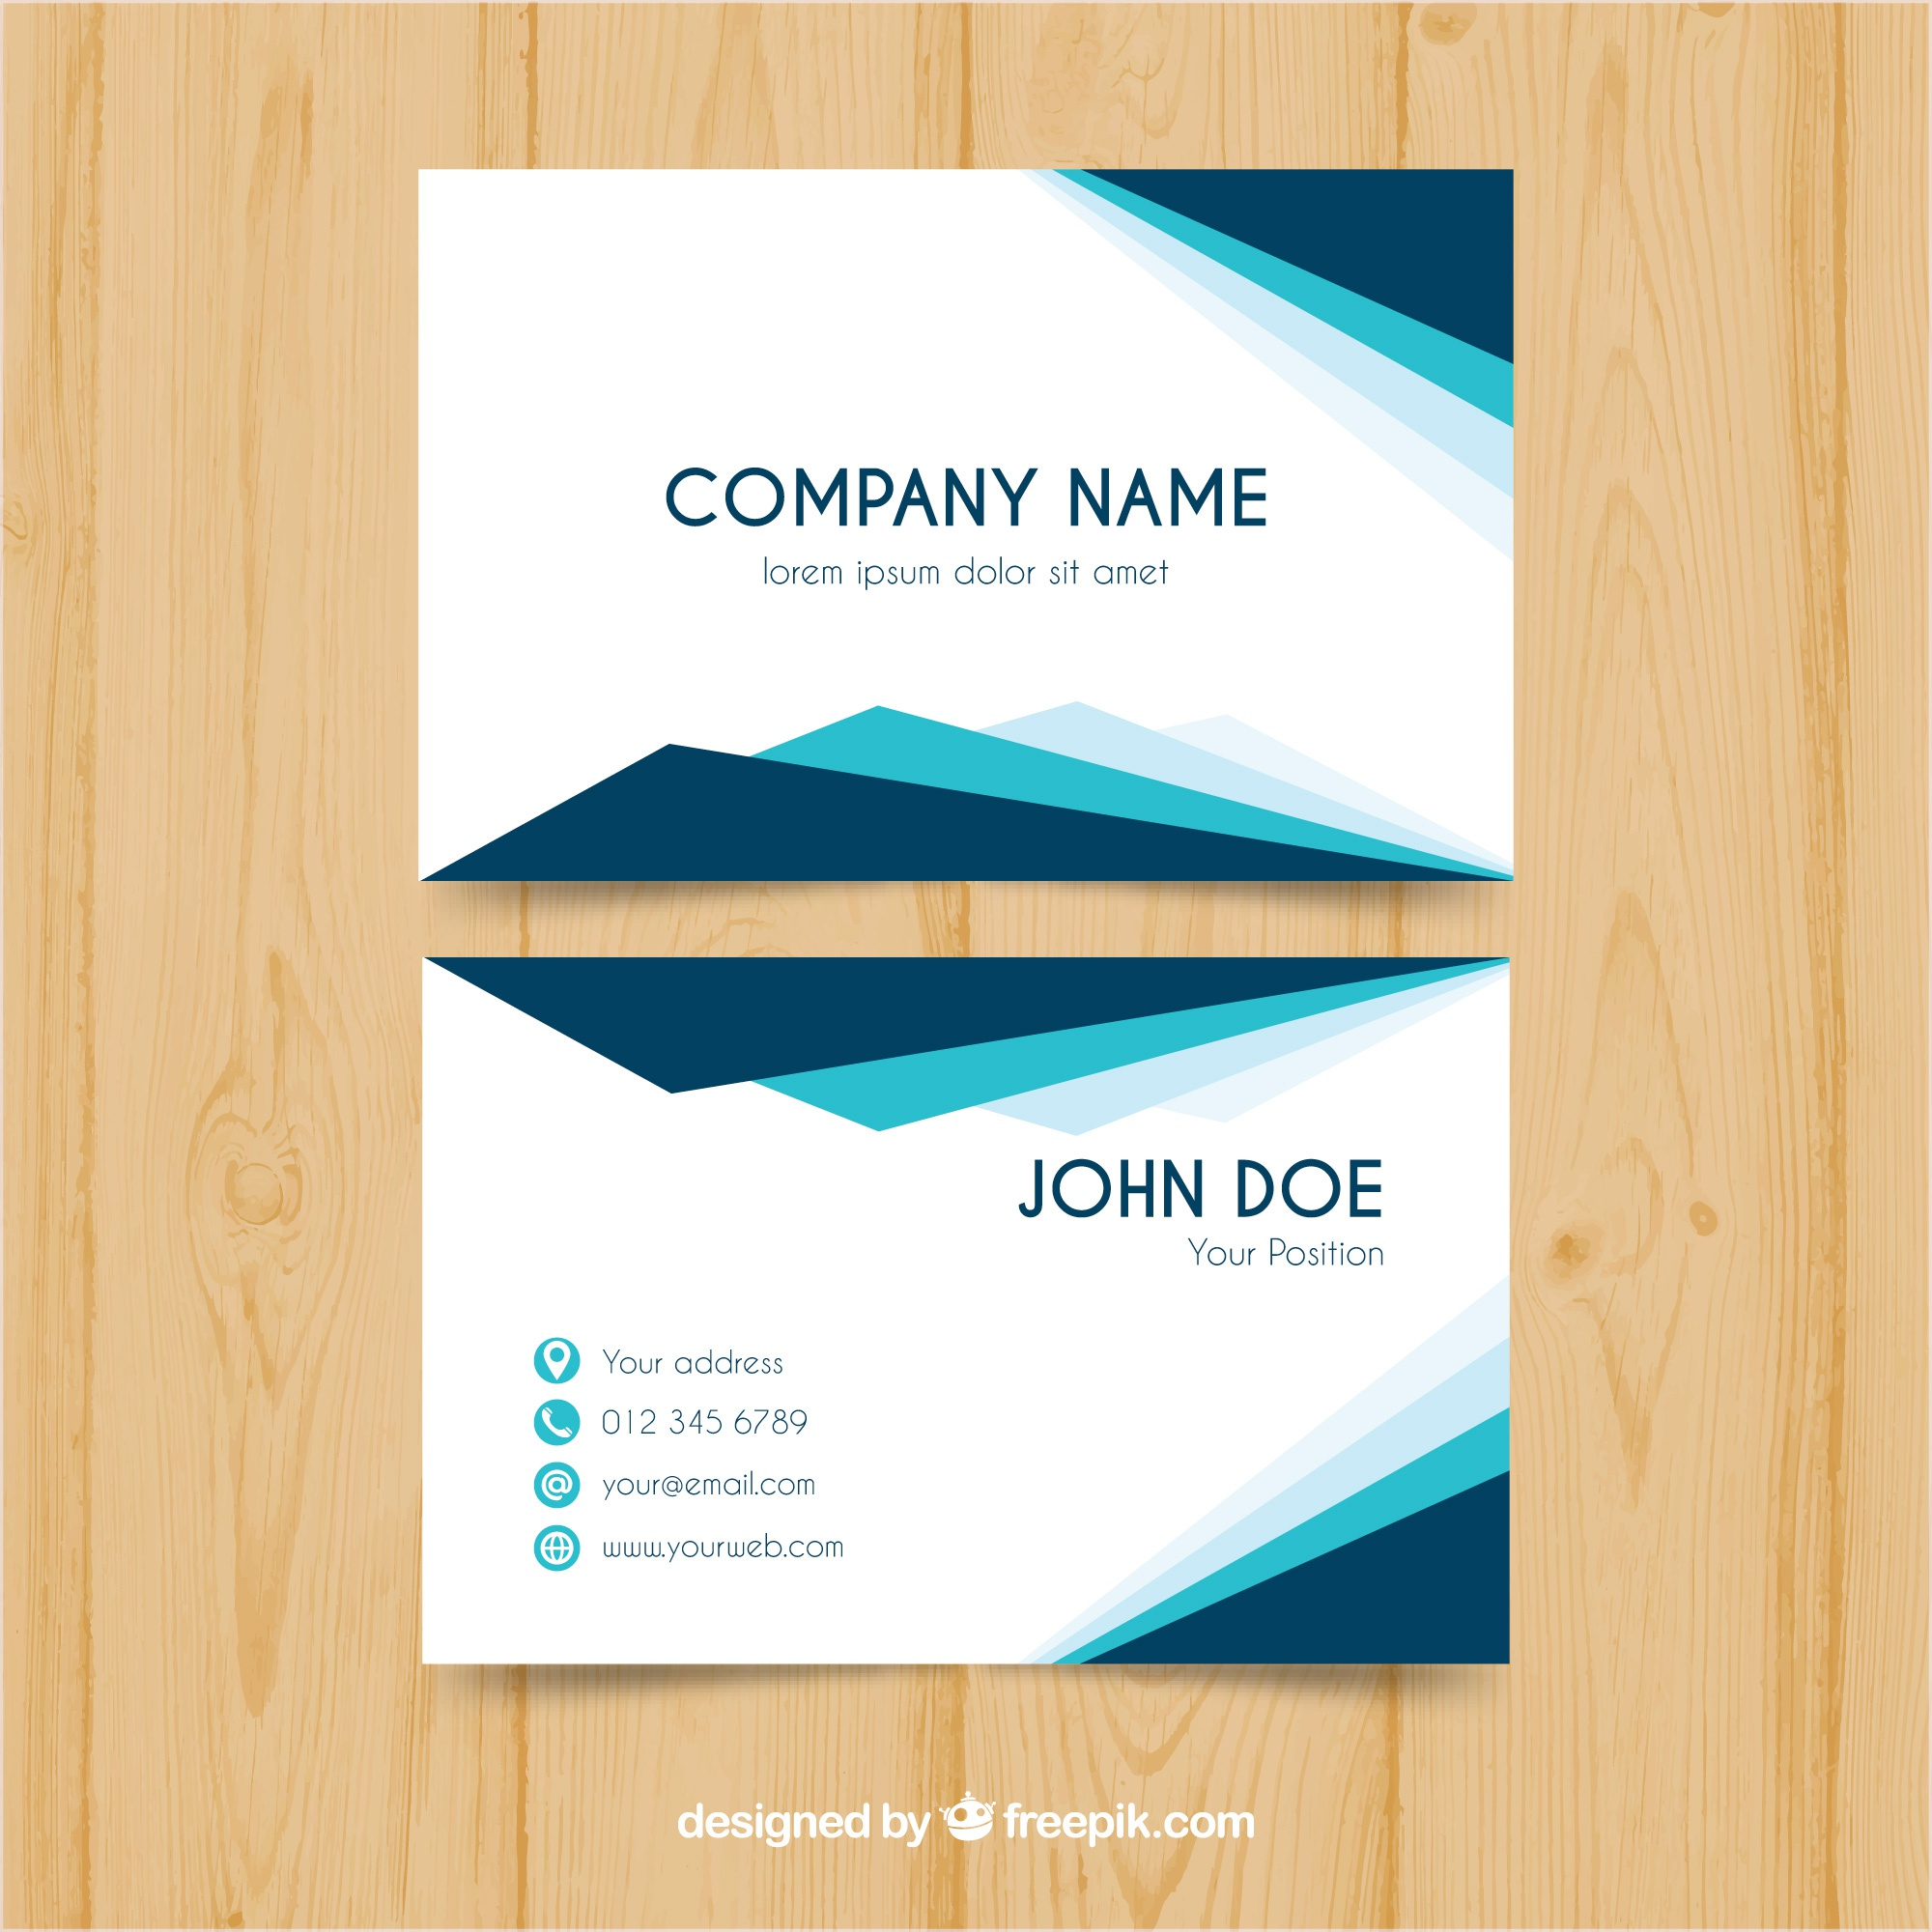 Modern and elegant business card